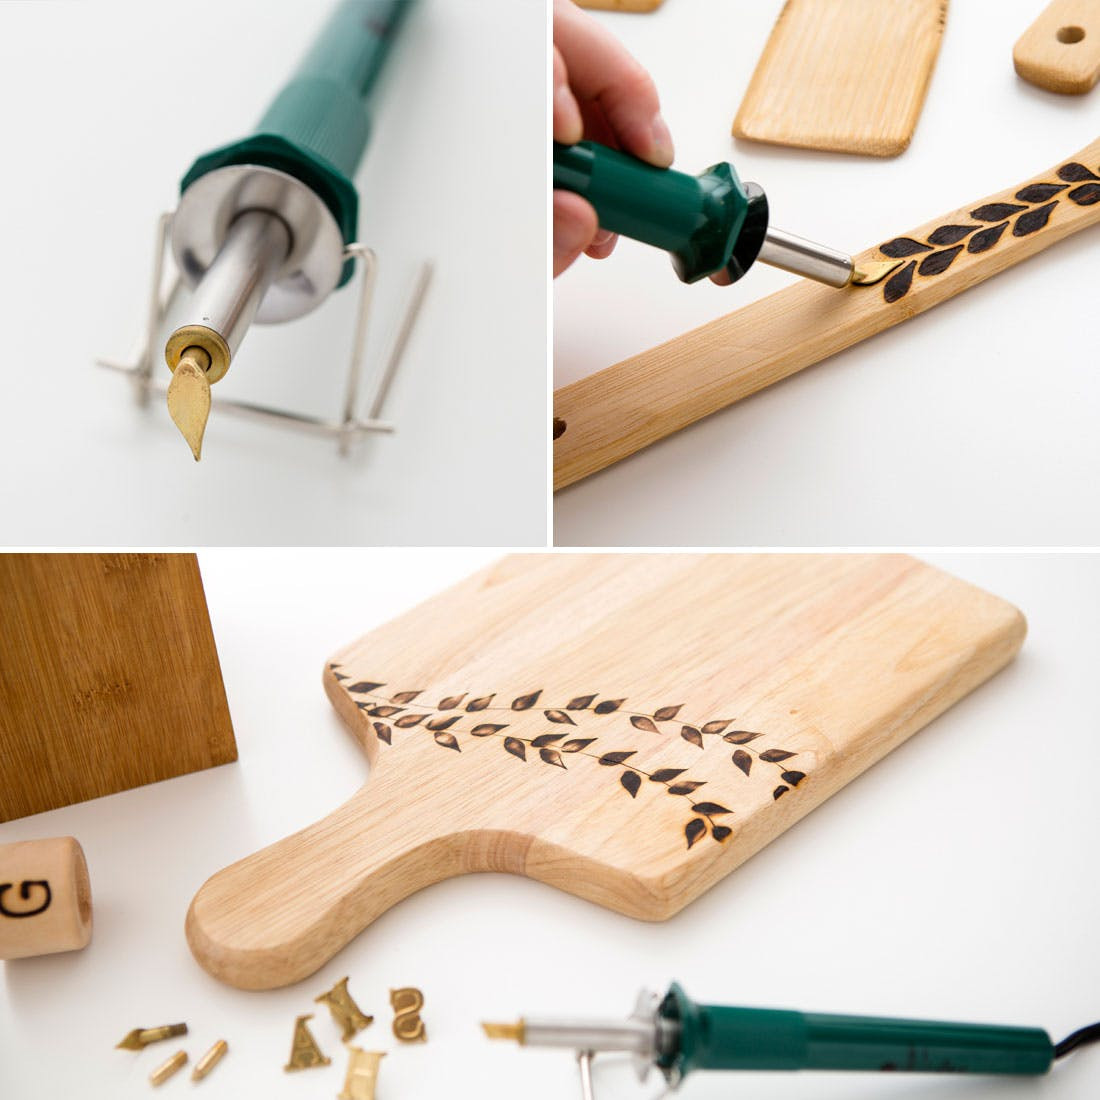 Best ideas about DIY Wood Burning Tool . Save or Pin Burn Baby Burn Wood Burning 101 Now.